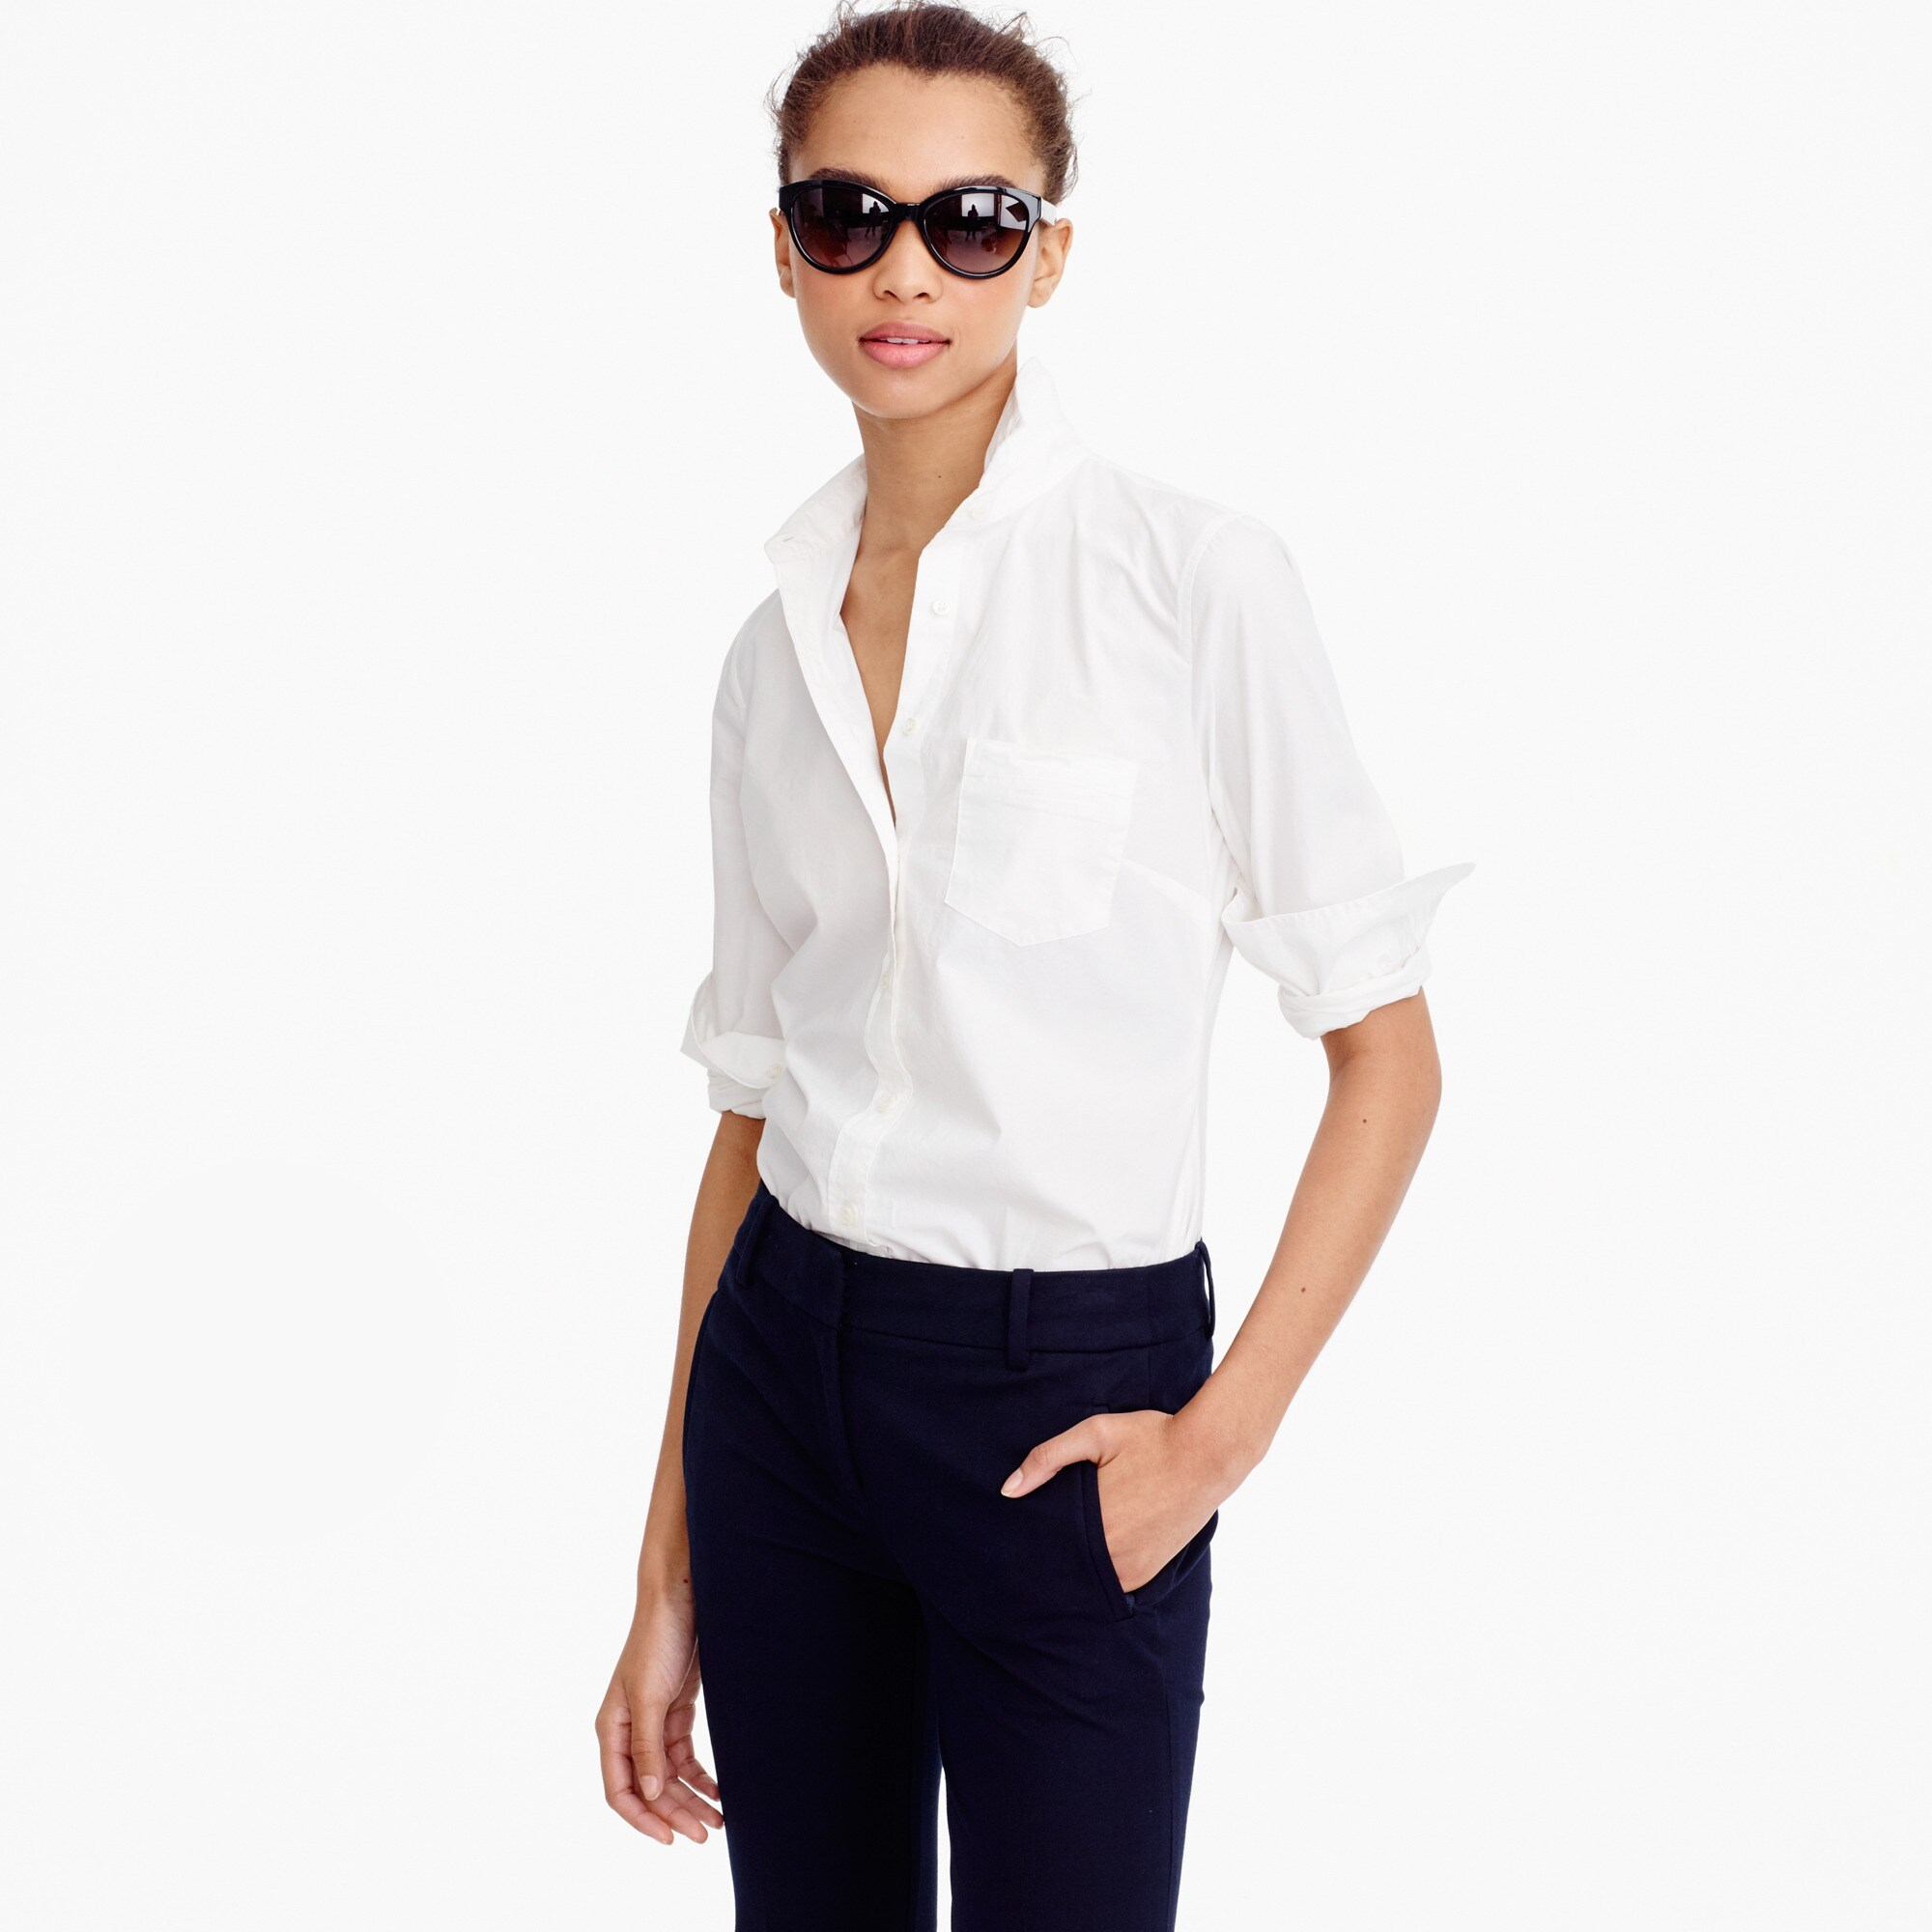 petite new perfect shirt in cotton poplin : women's shirts